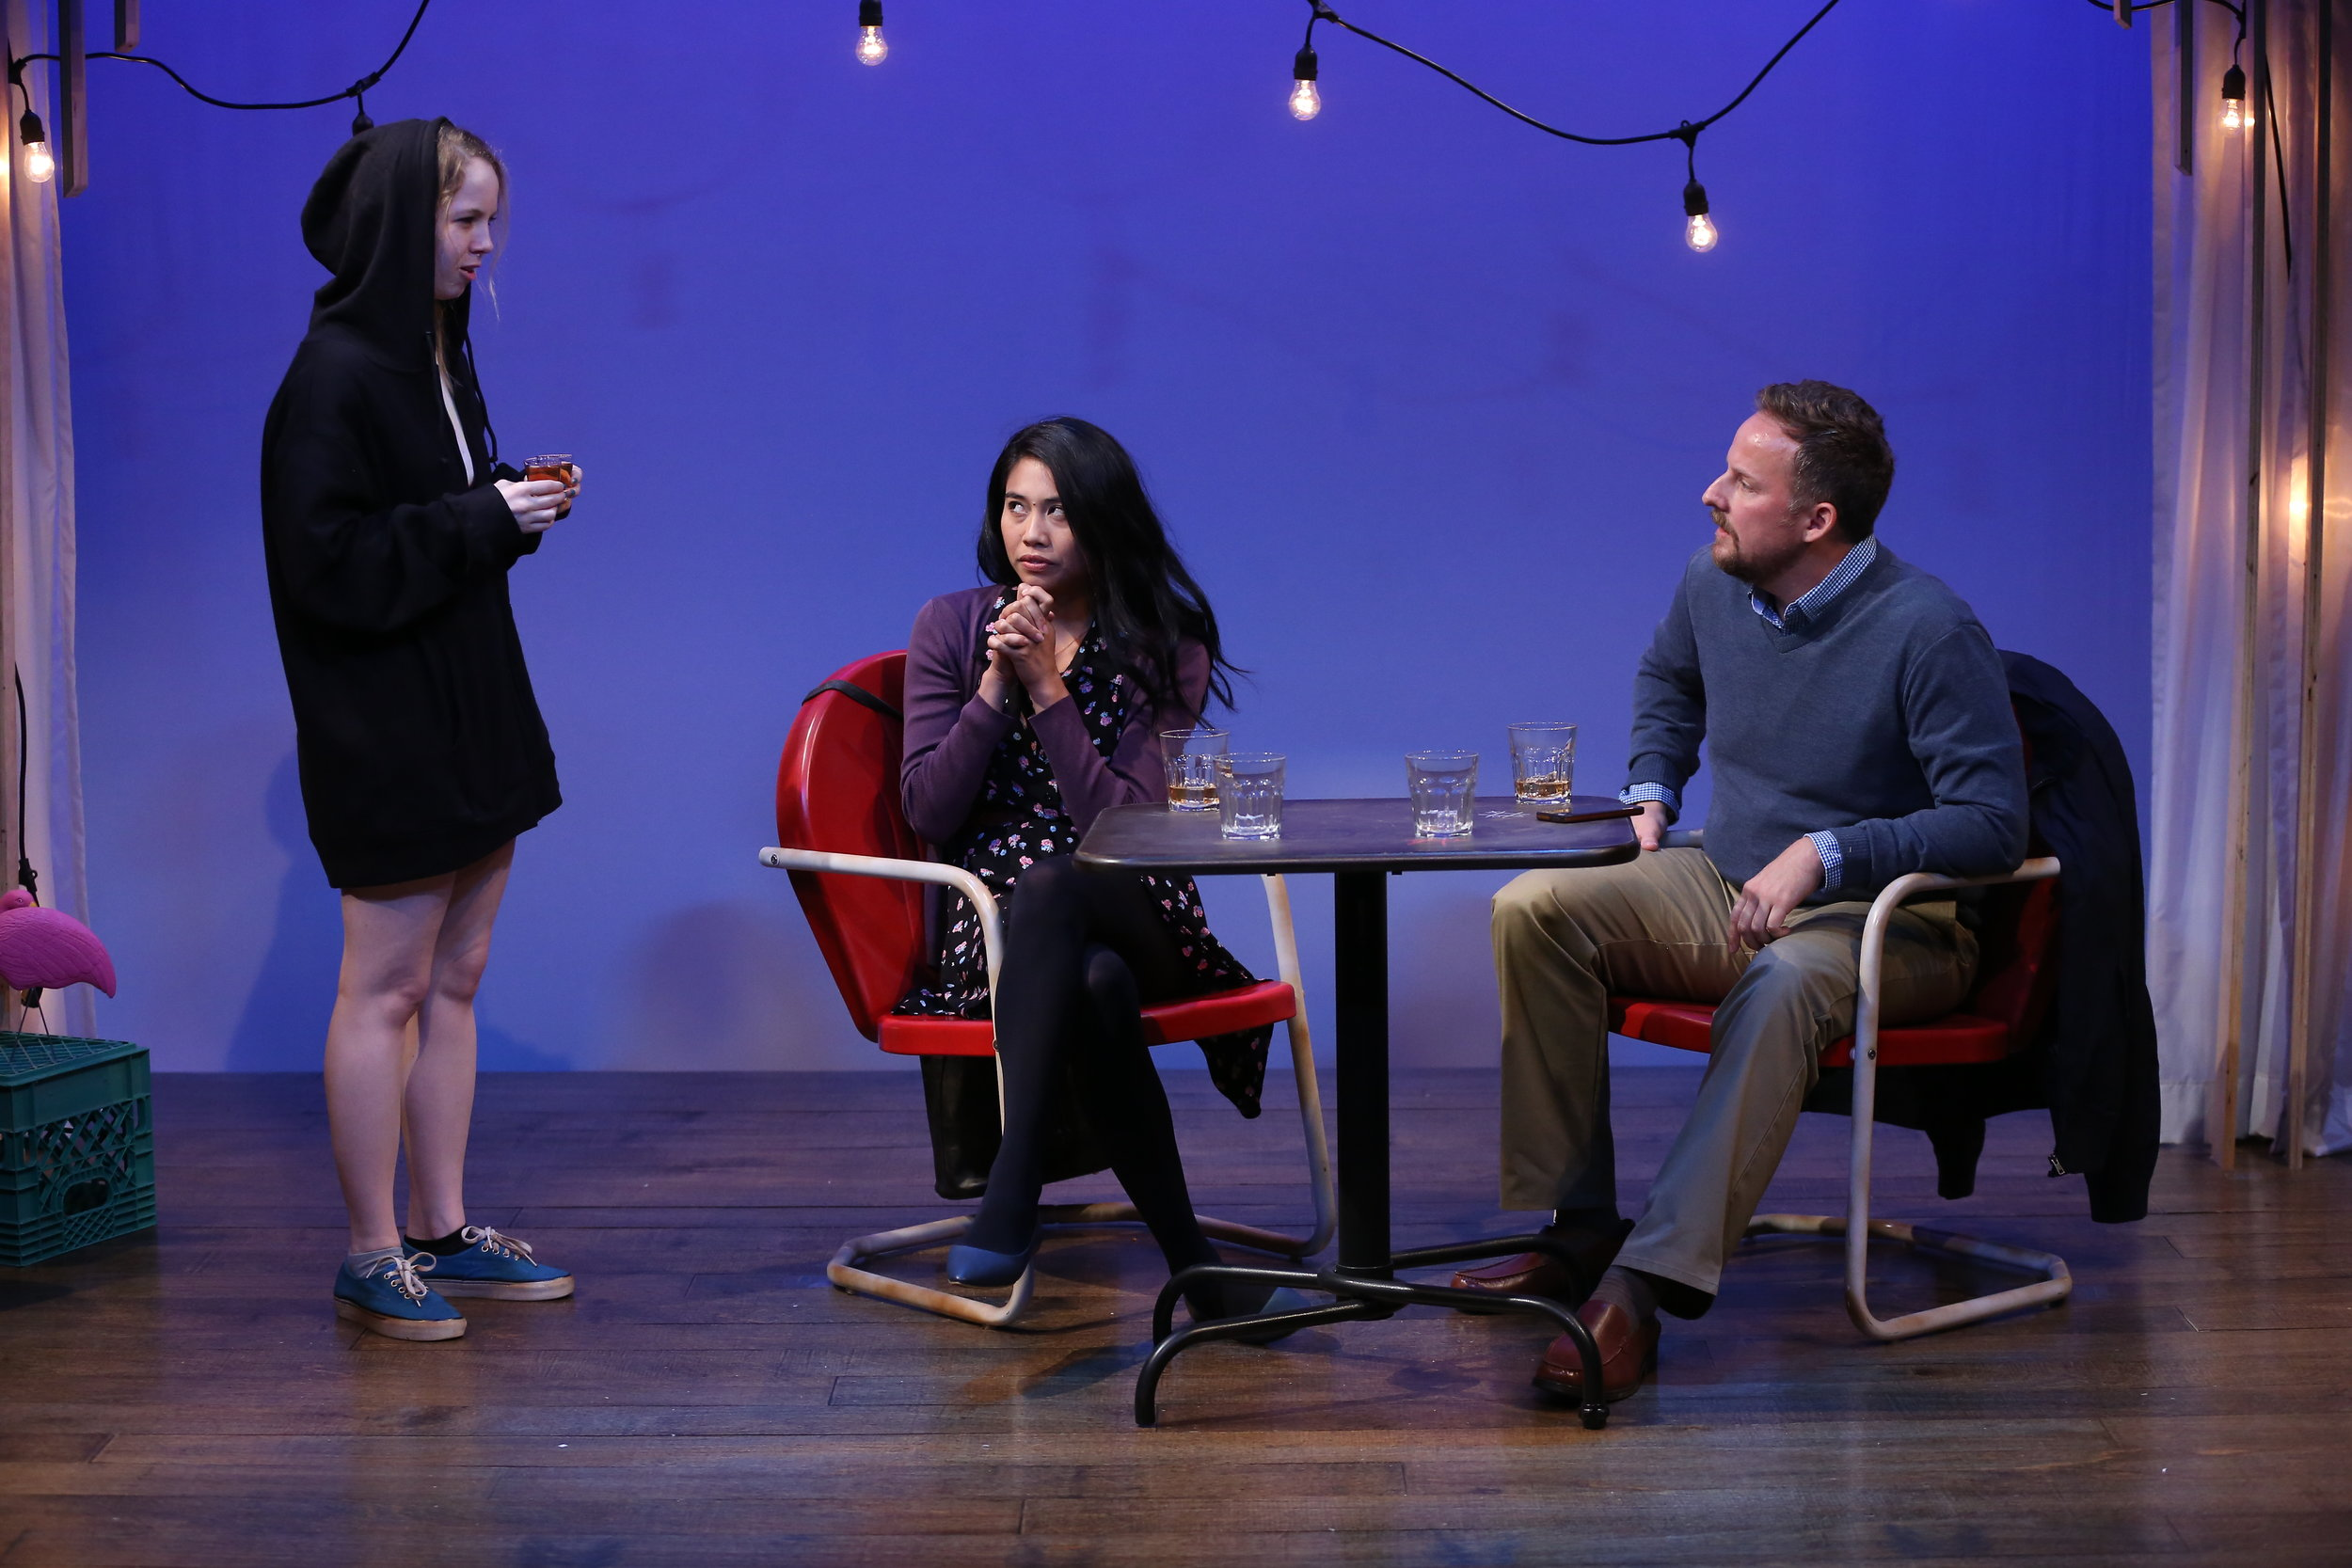 L-R: Mariah Lee, Francesca Fernandez McKenzie and Stephen Guarino in KENNY'S TAVERN by Abby Rosebrock, part of Summer Shorts 2018 at 59E59 Theaters. Photo by Carol Rosegg.